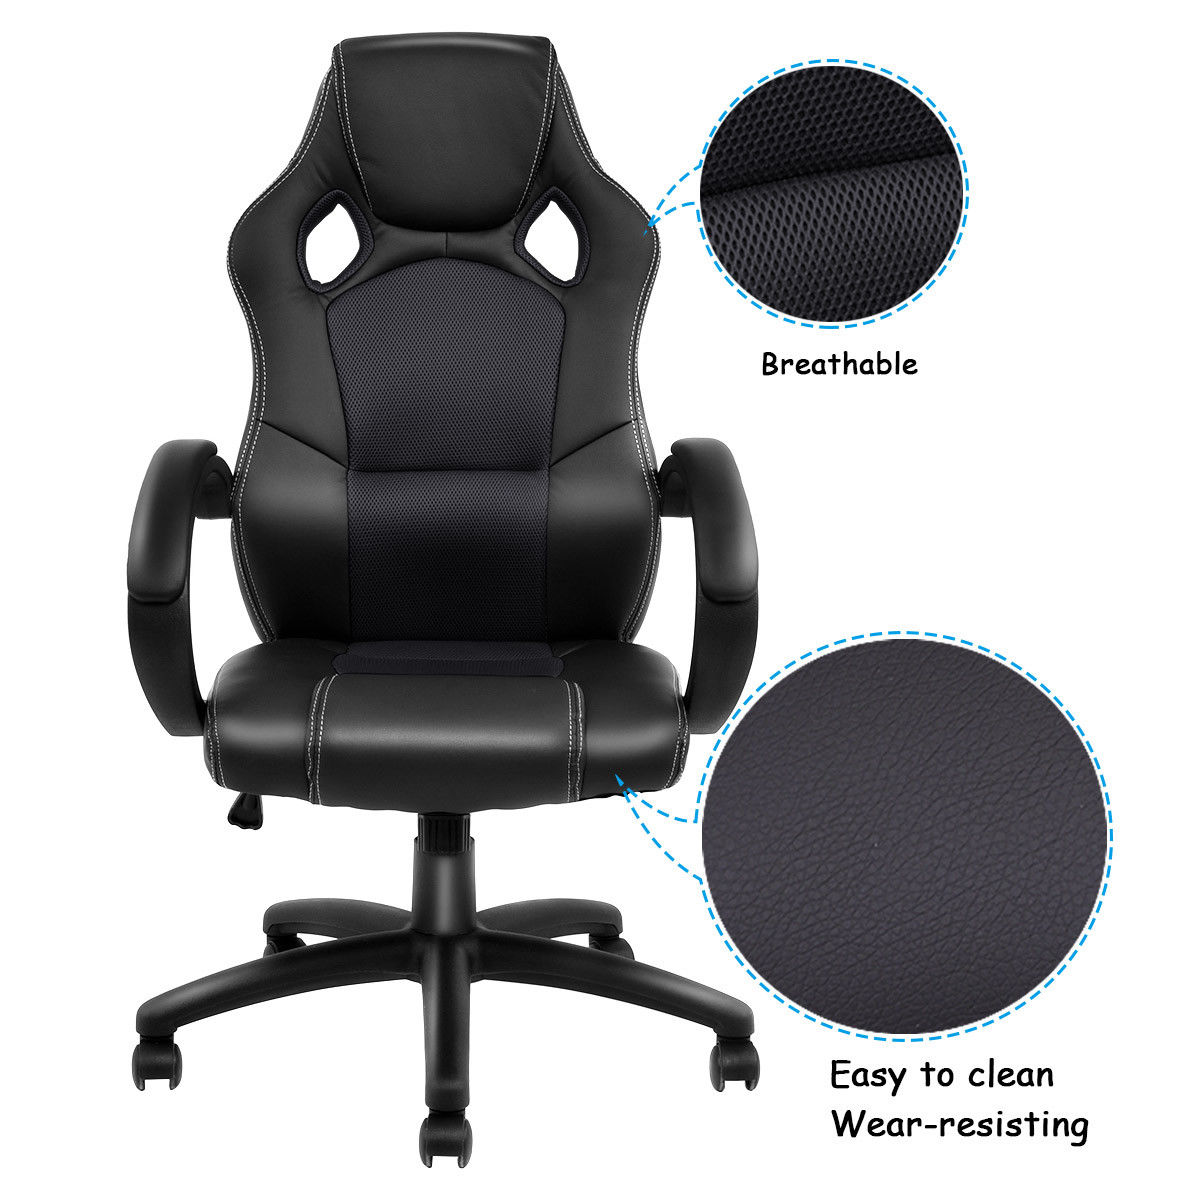 Bucket Racing Chair King Throne Rental Giantex Gaming High Back Seat Office Desk Swivel Executive Armchair Modern Furniture Hw54590bk In Chairs From